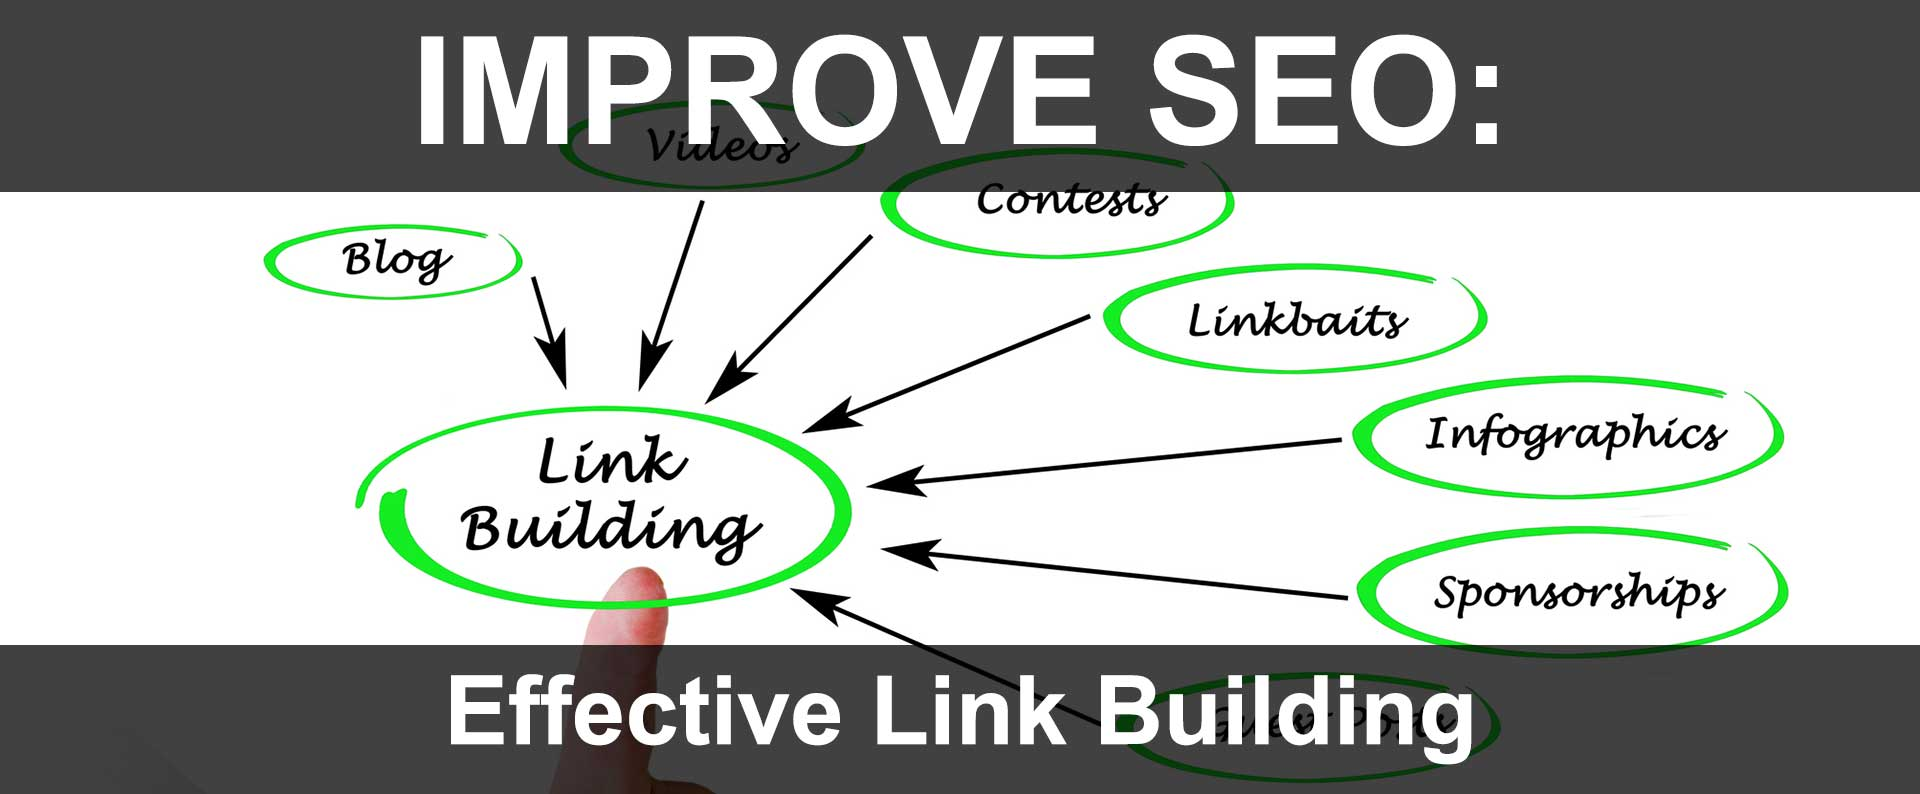 Tips on Using Incoming & Outgoing Links Effectively